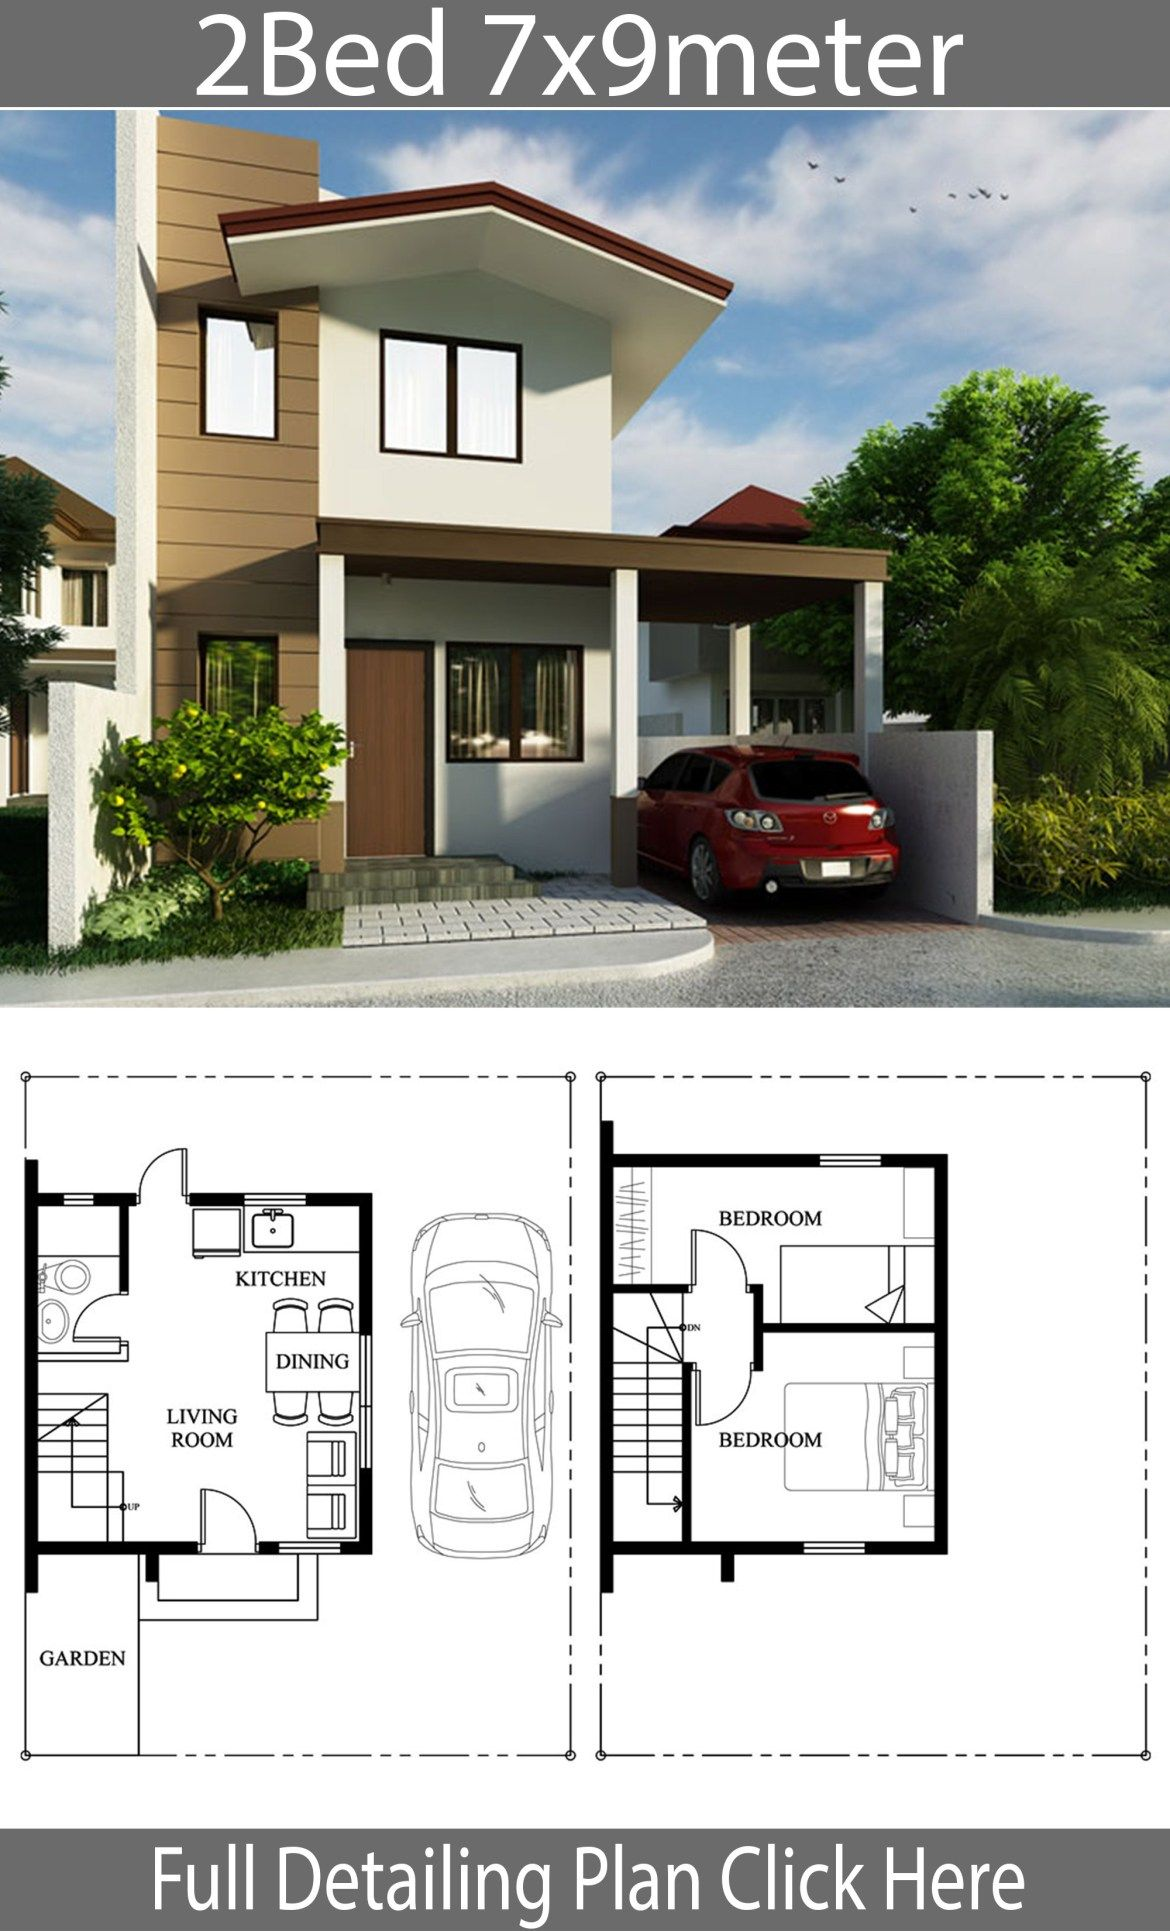 Small Home Design Plan 7x9m With 2 Bedrooms Home Planssearch House Design Small House Design 2 Bedroom House Design